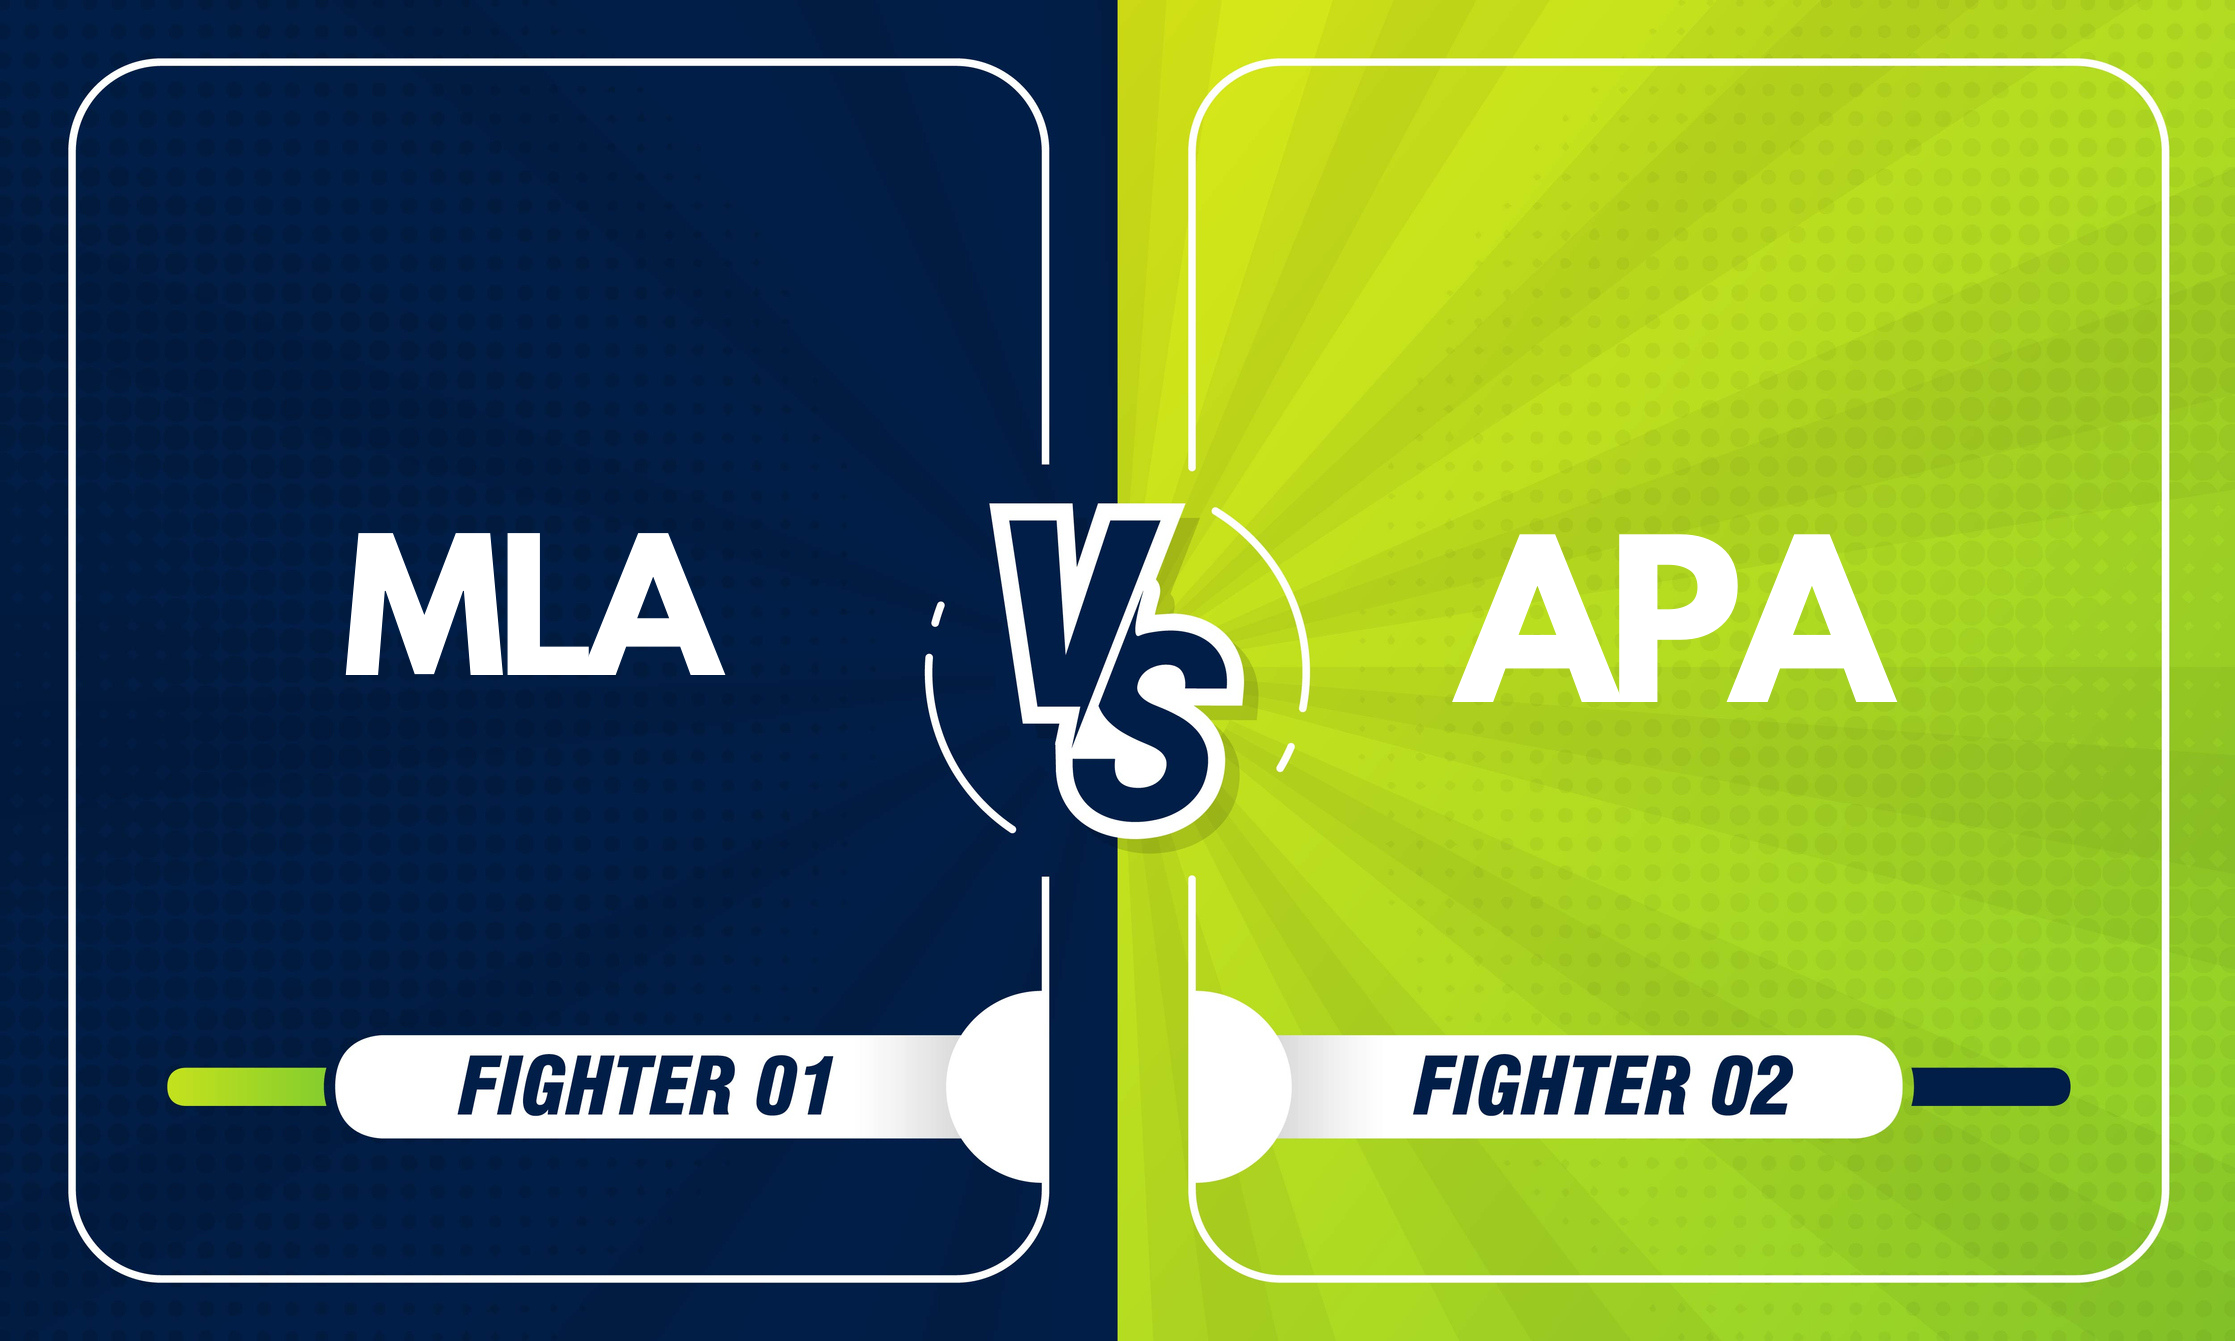 difference between mla and apa